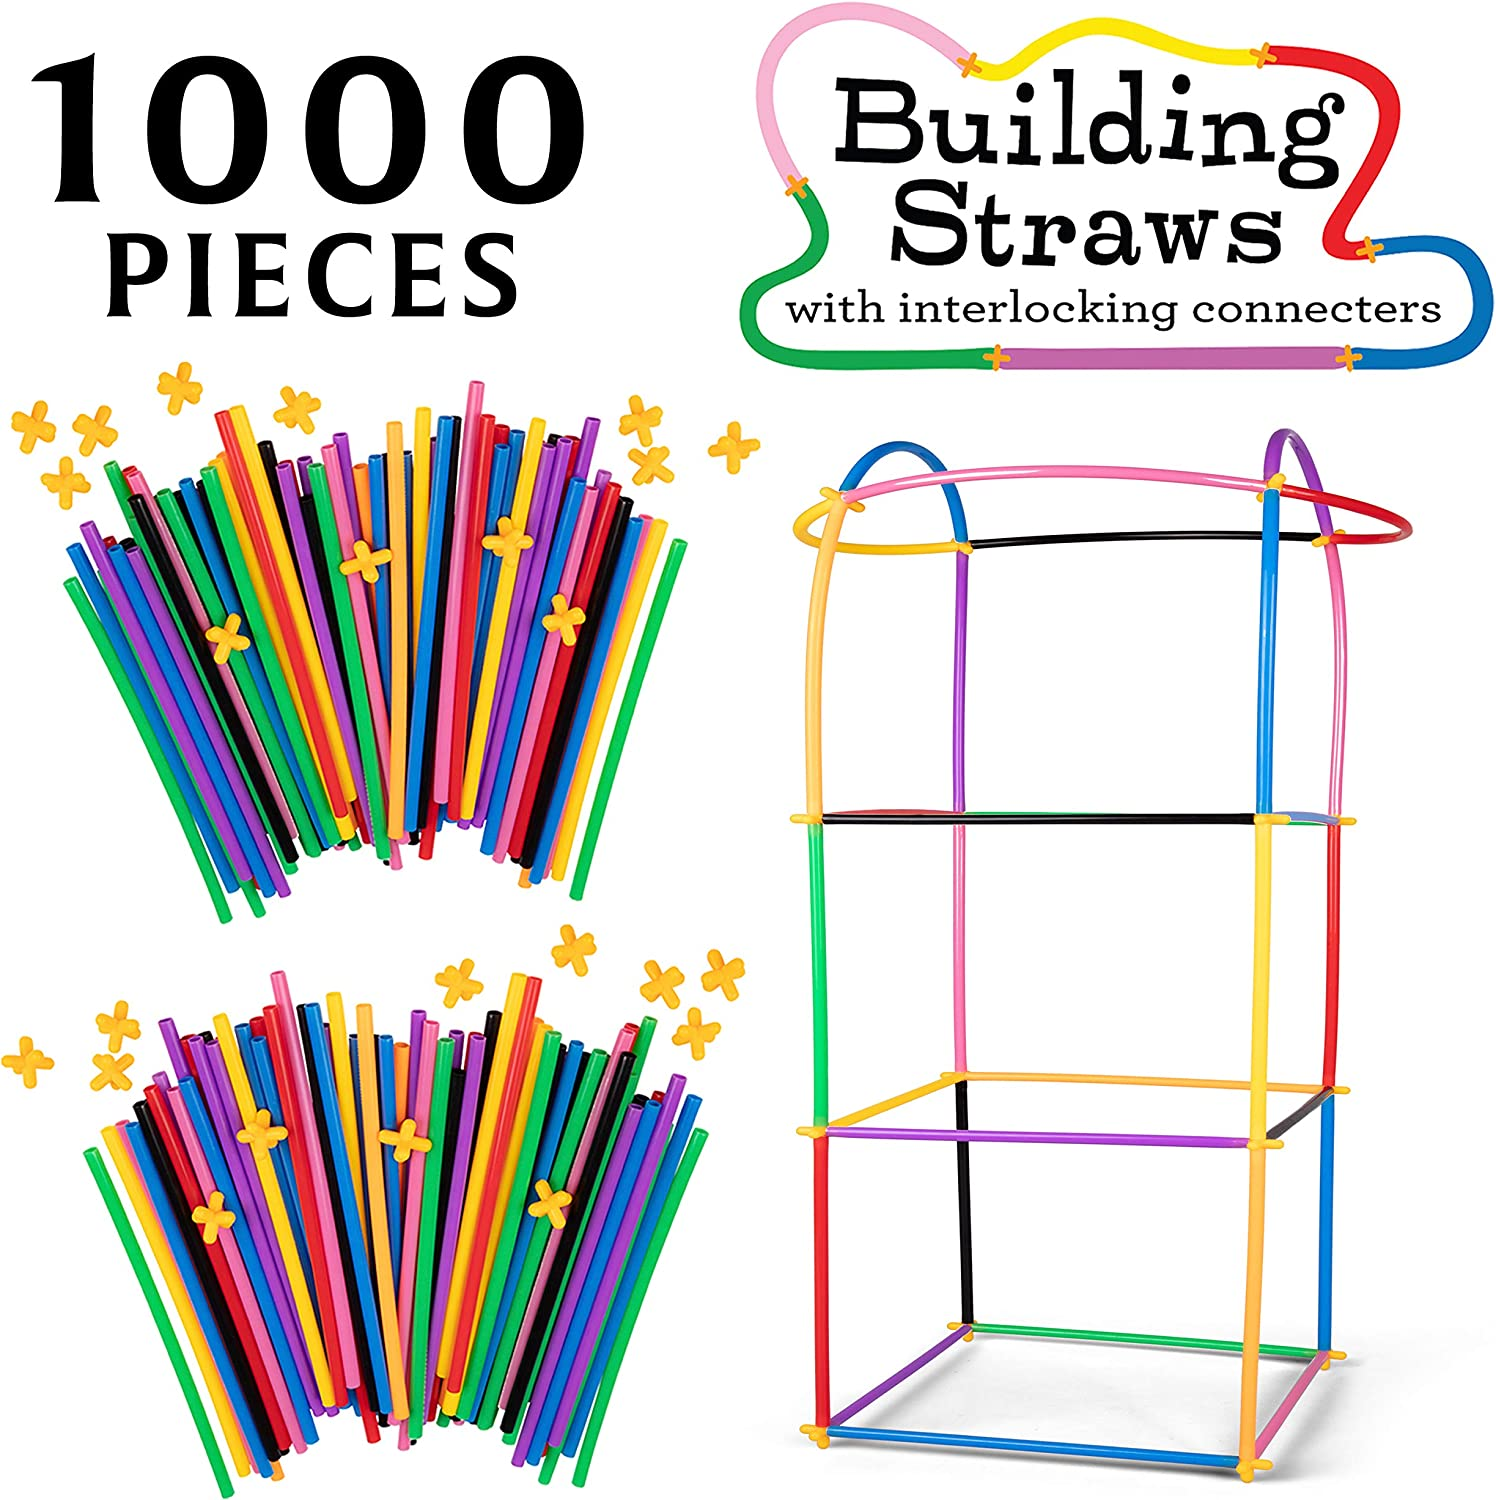 SCS Direct 1000pc Building Straws & Connectors Set for Kids - STEM Educational Construction Toy Includes Assorted Colors & Interlocking Connectors - Helps Develop Motor Skills & Learning - Age 3+